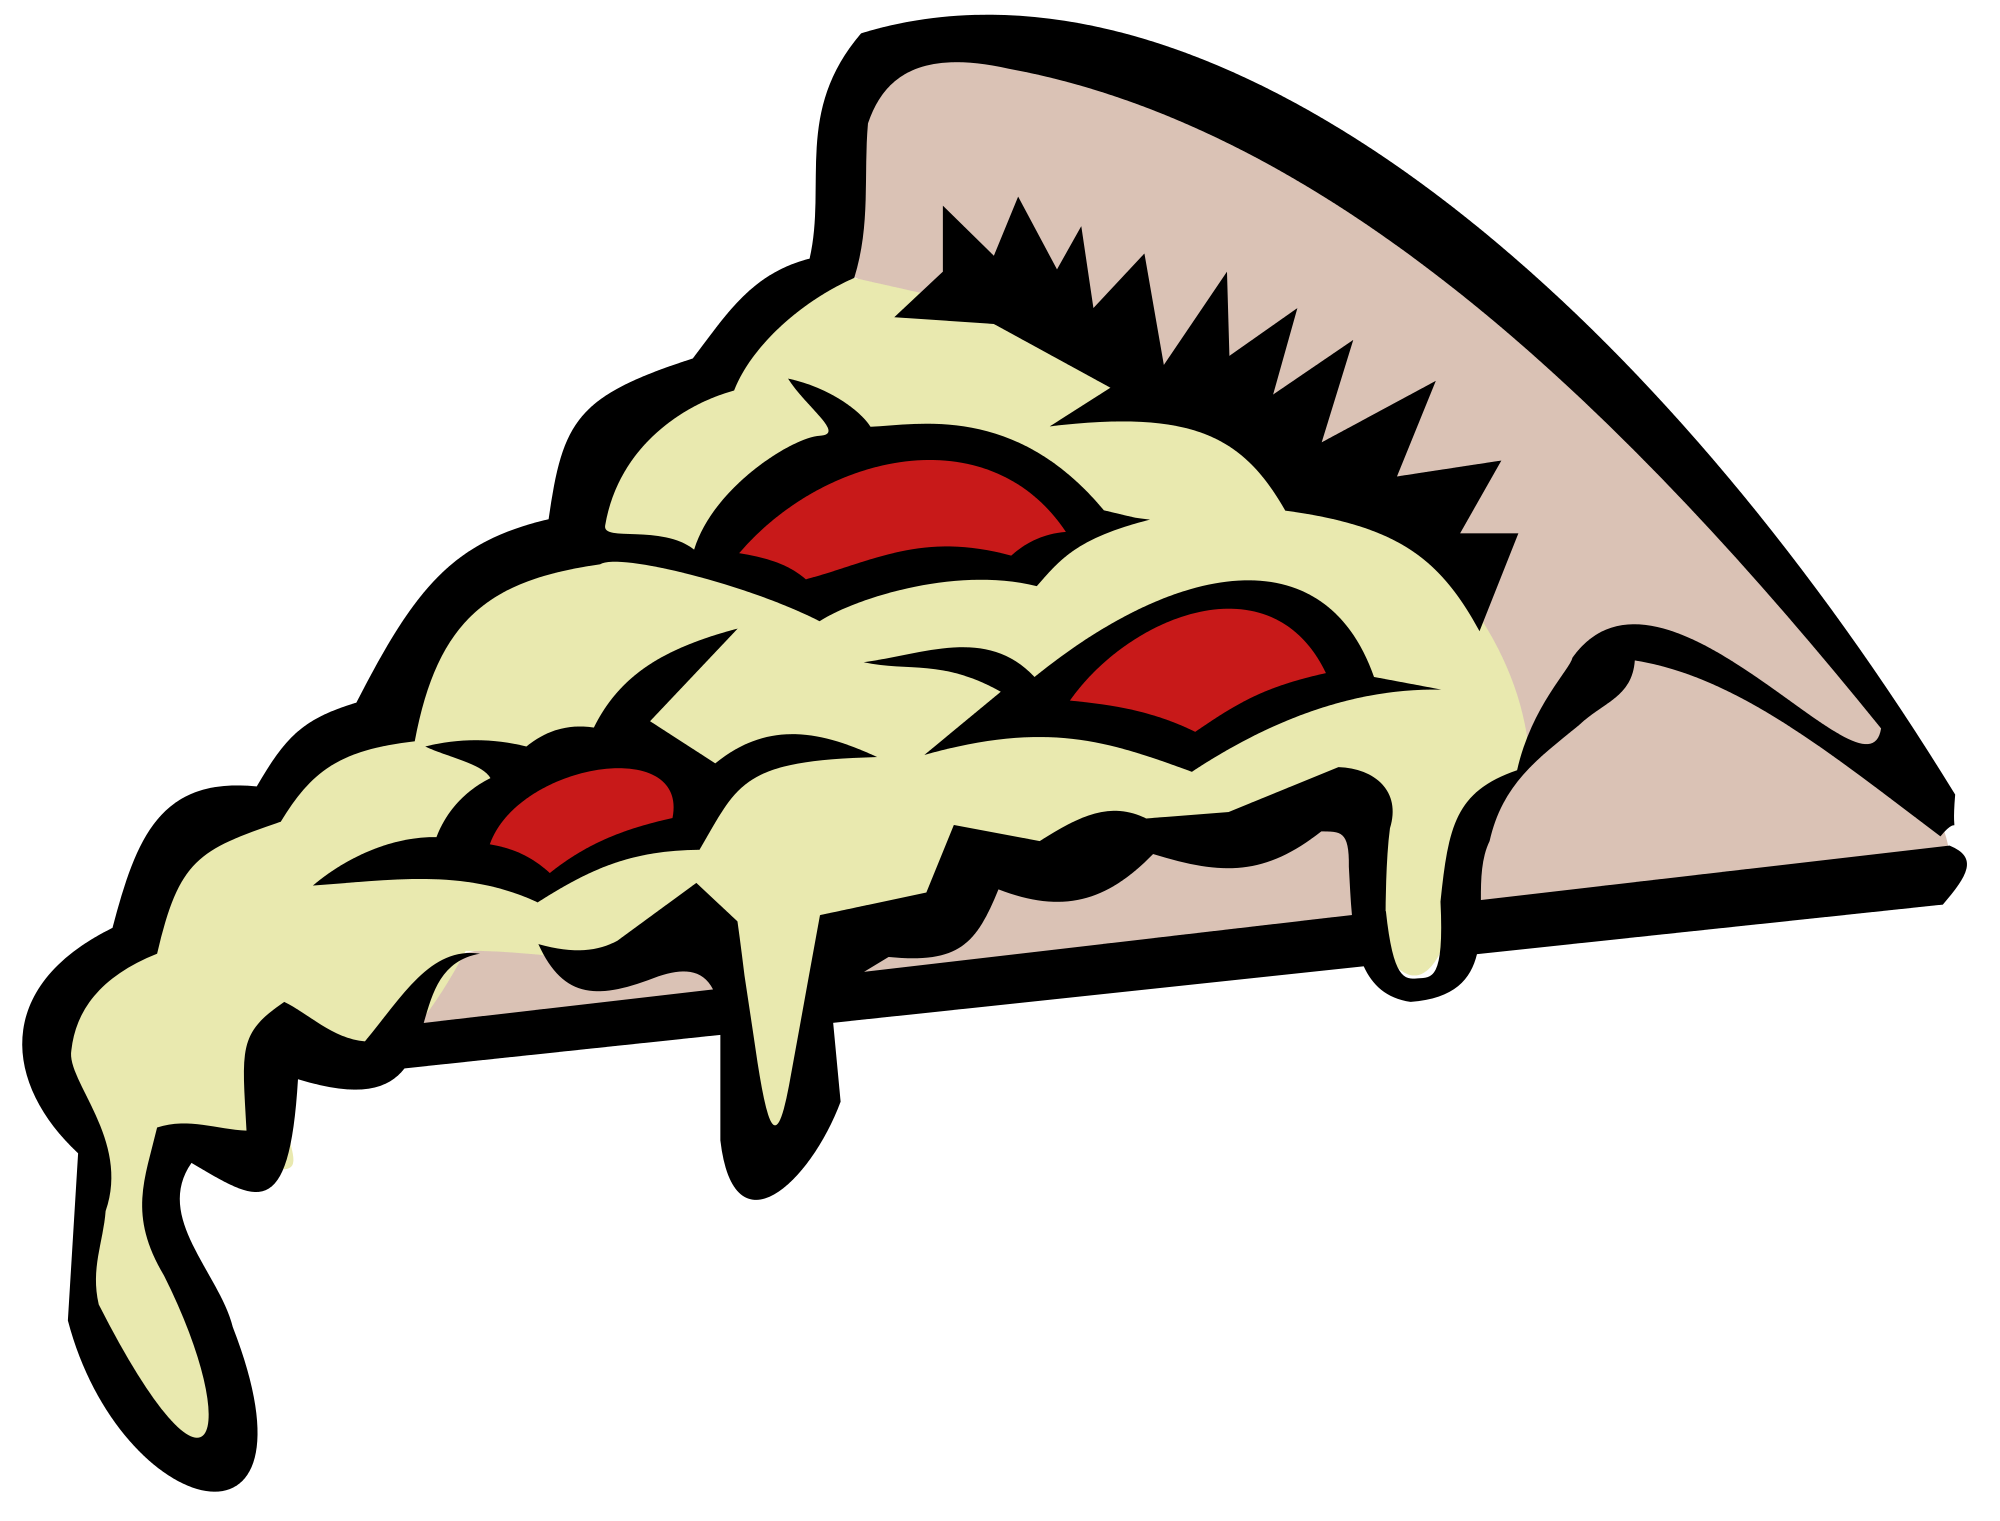 Svg clipart collection clip freeuse library File:Pizza.svg - Wikimedia Commons clip freeuse library